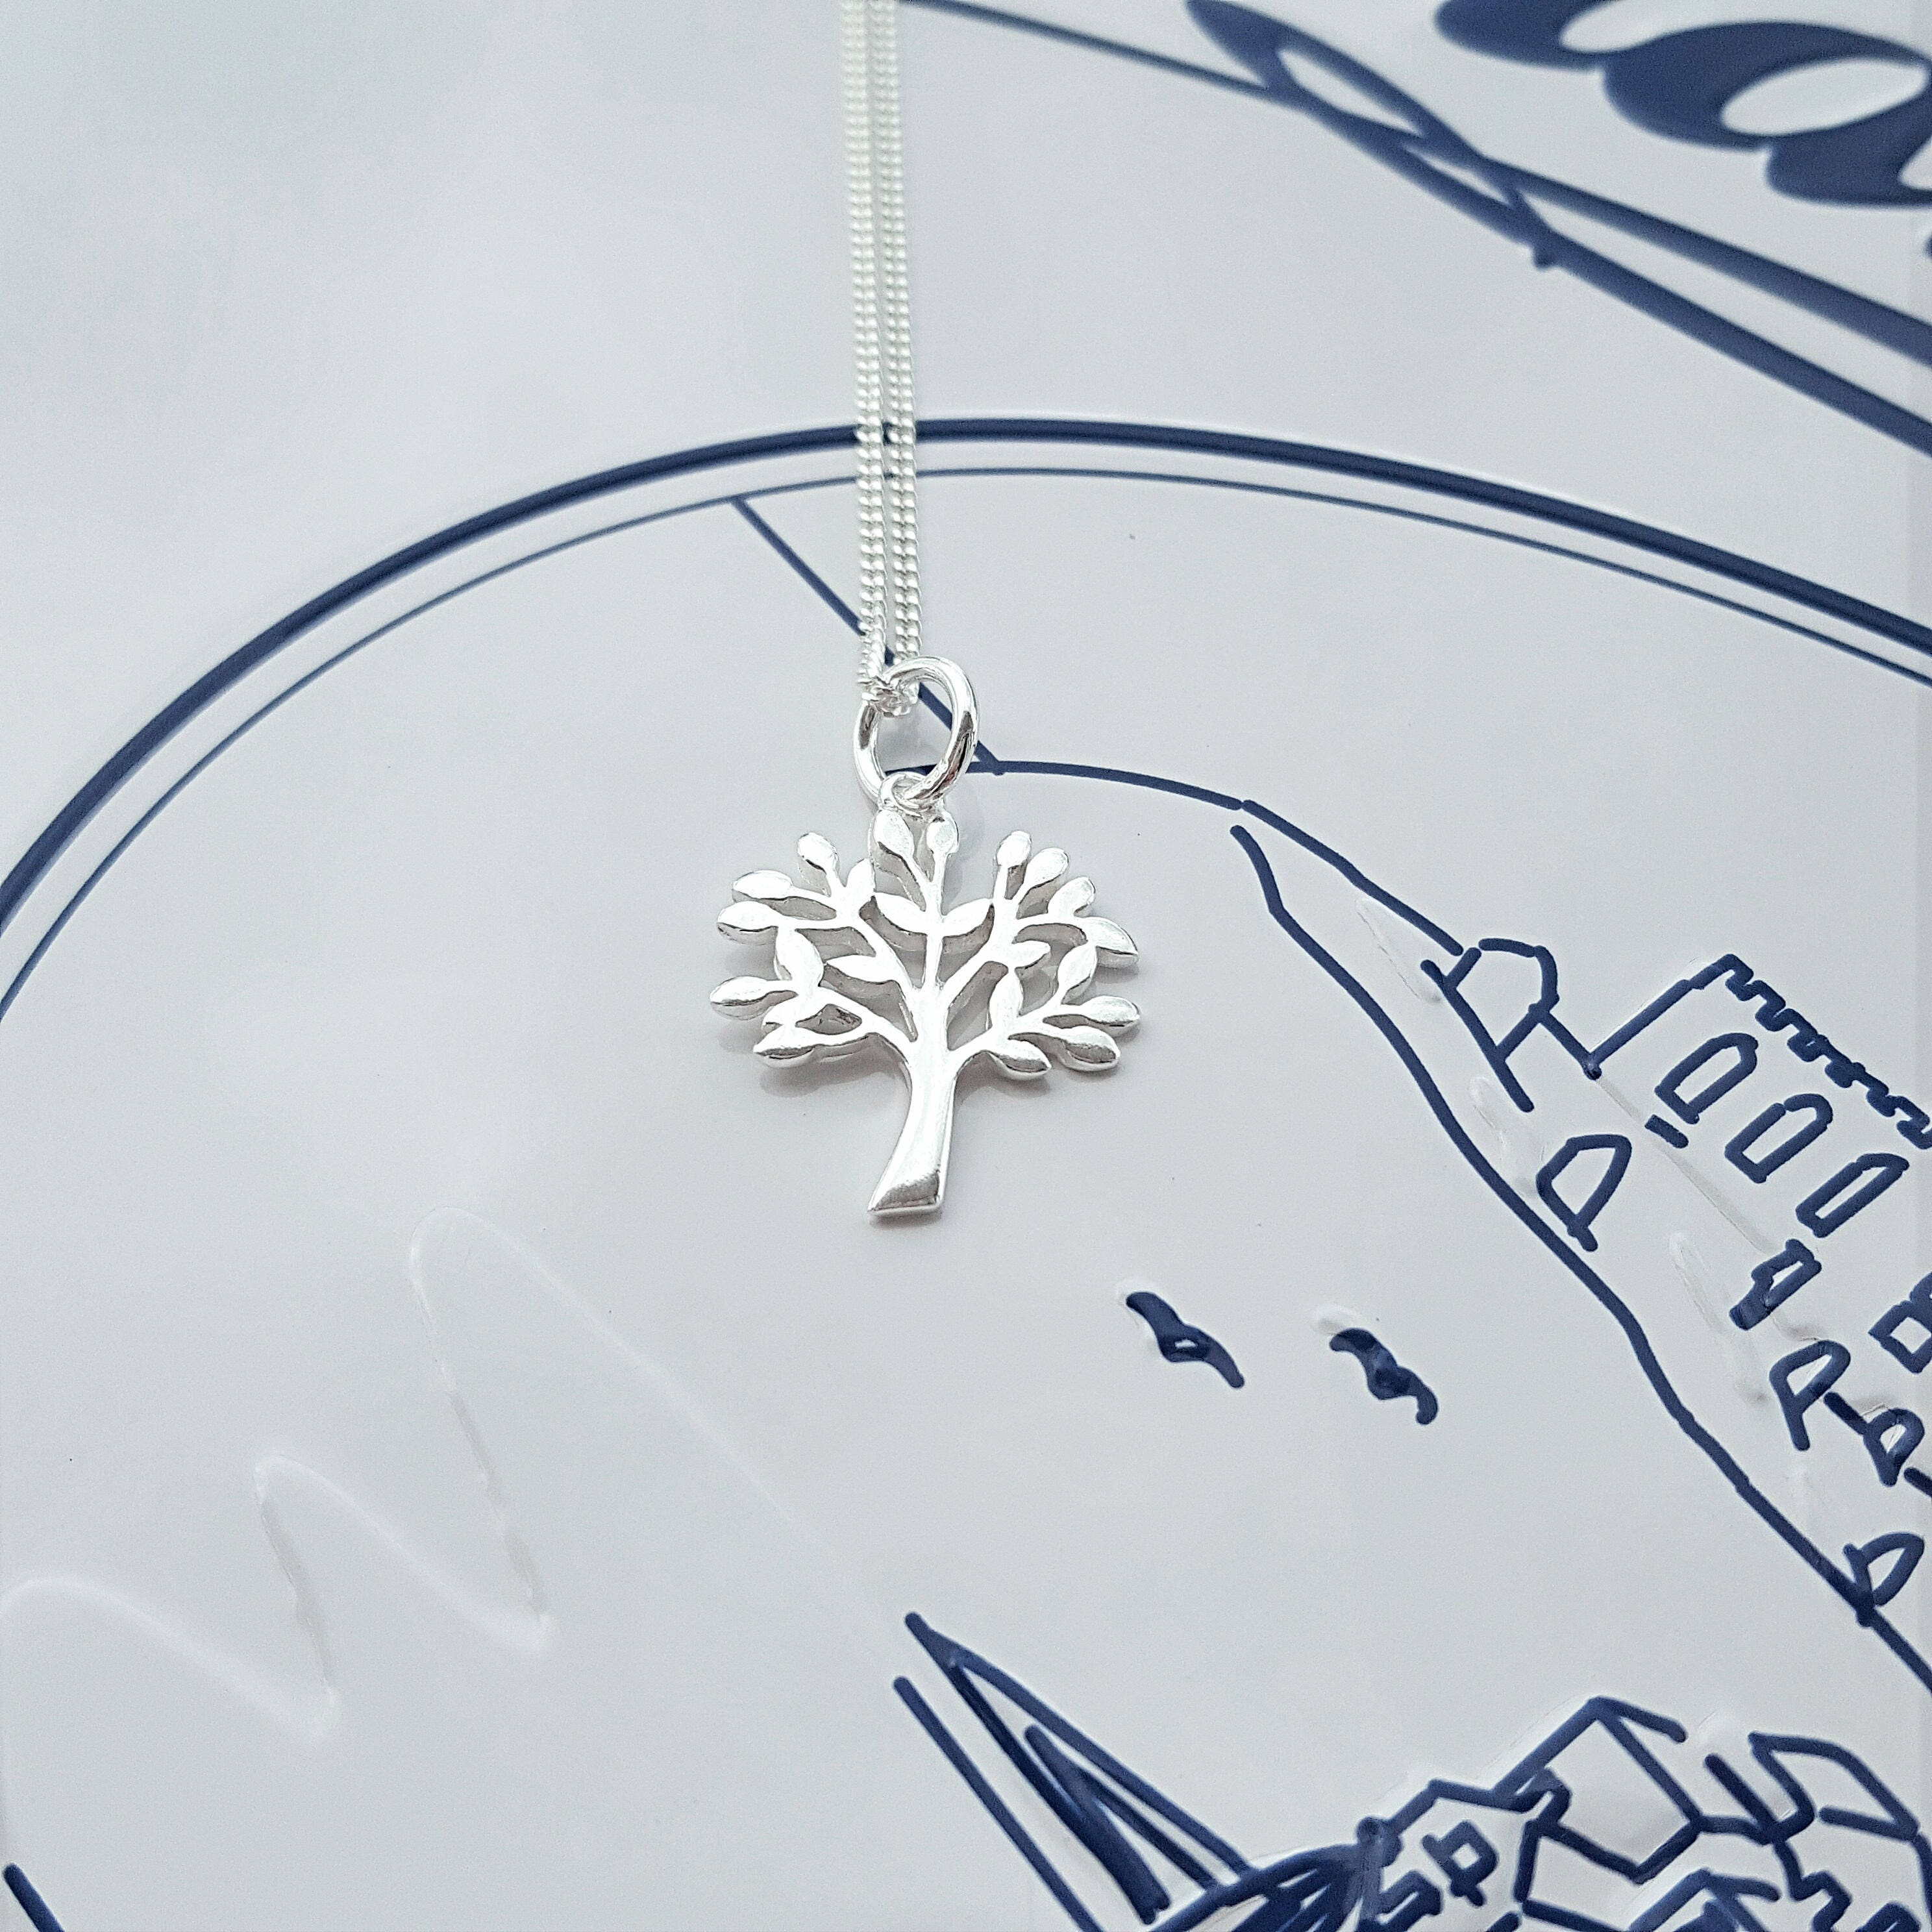 Family Tree Necklace Sterling Silver Family Tree Necklace Silver Family Tree Necklace Silver Family Tree Family Tree Charm Tree of Life